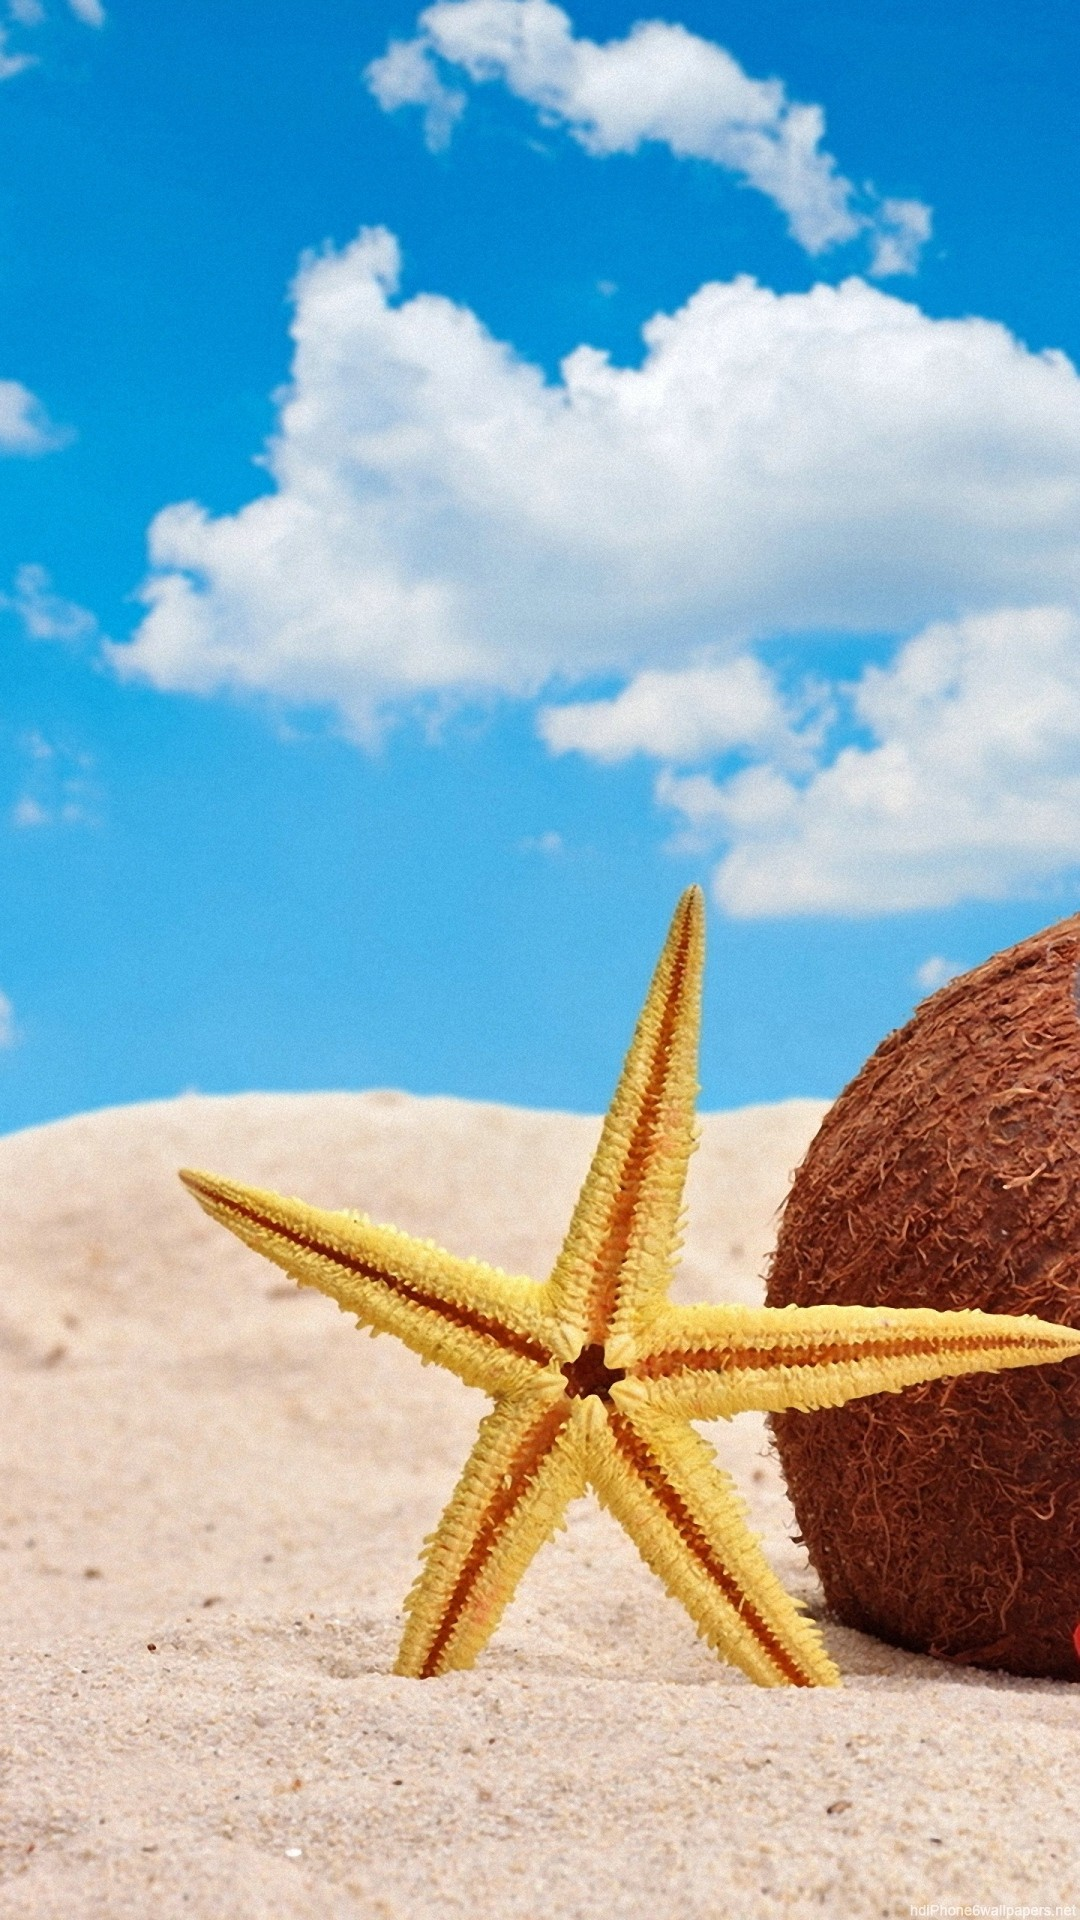 star fish summer beach iPhone 6 wallpapers HD – 6 Plus backgrounds